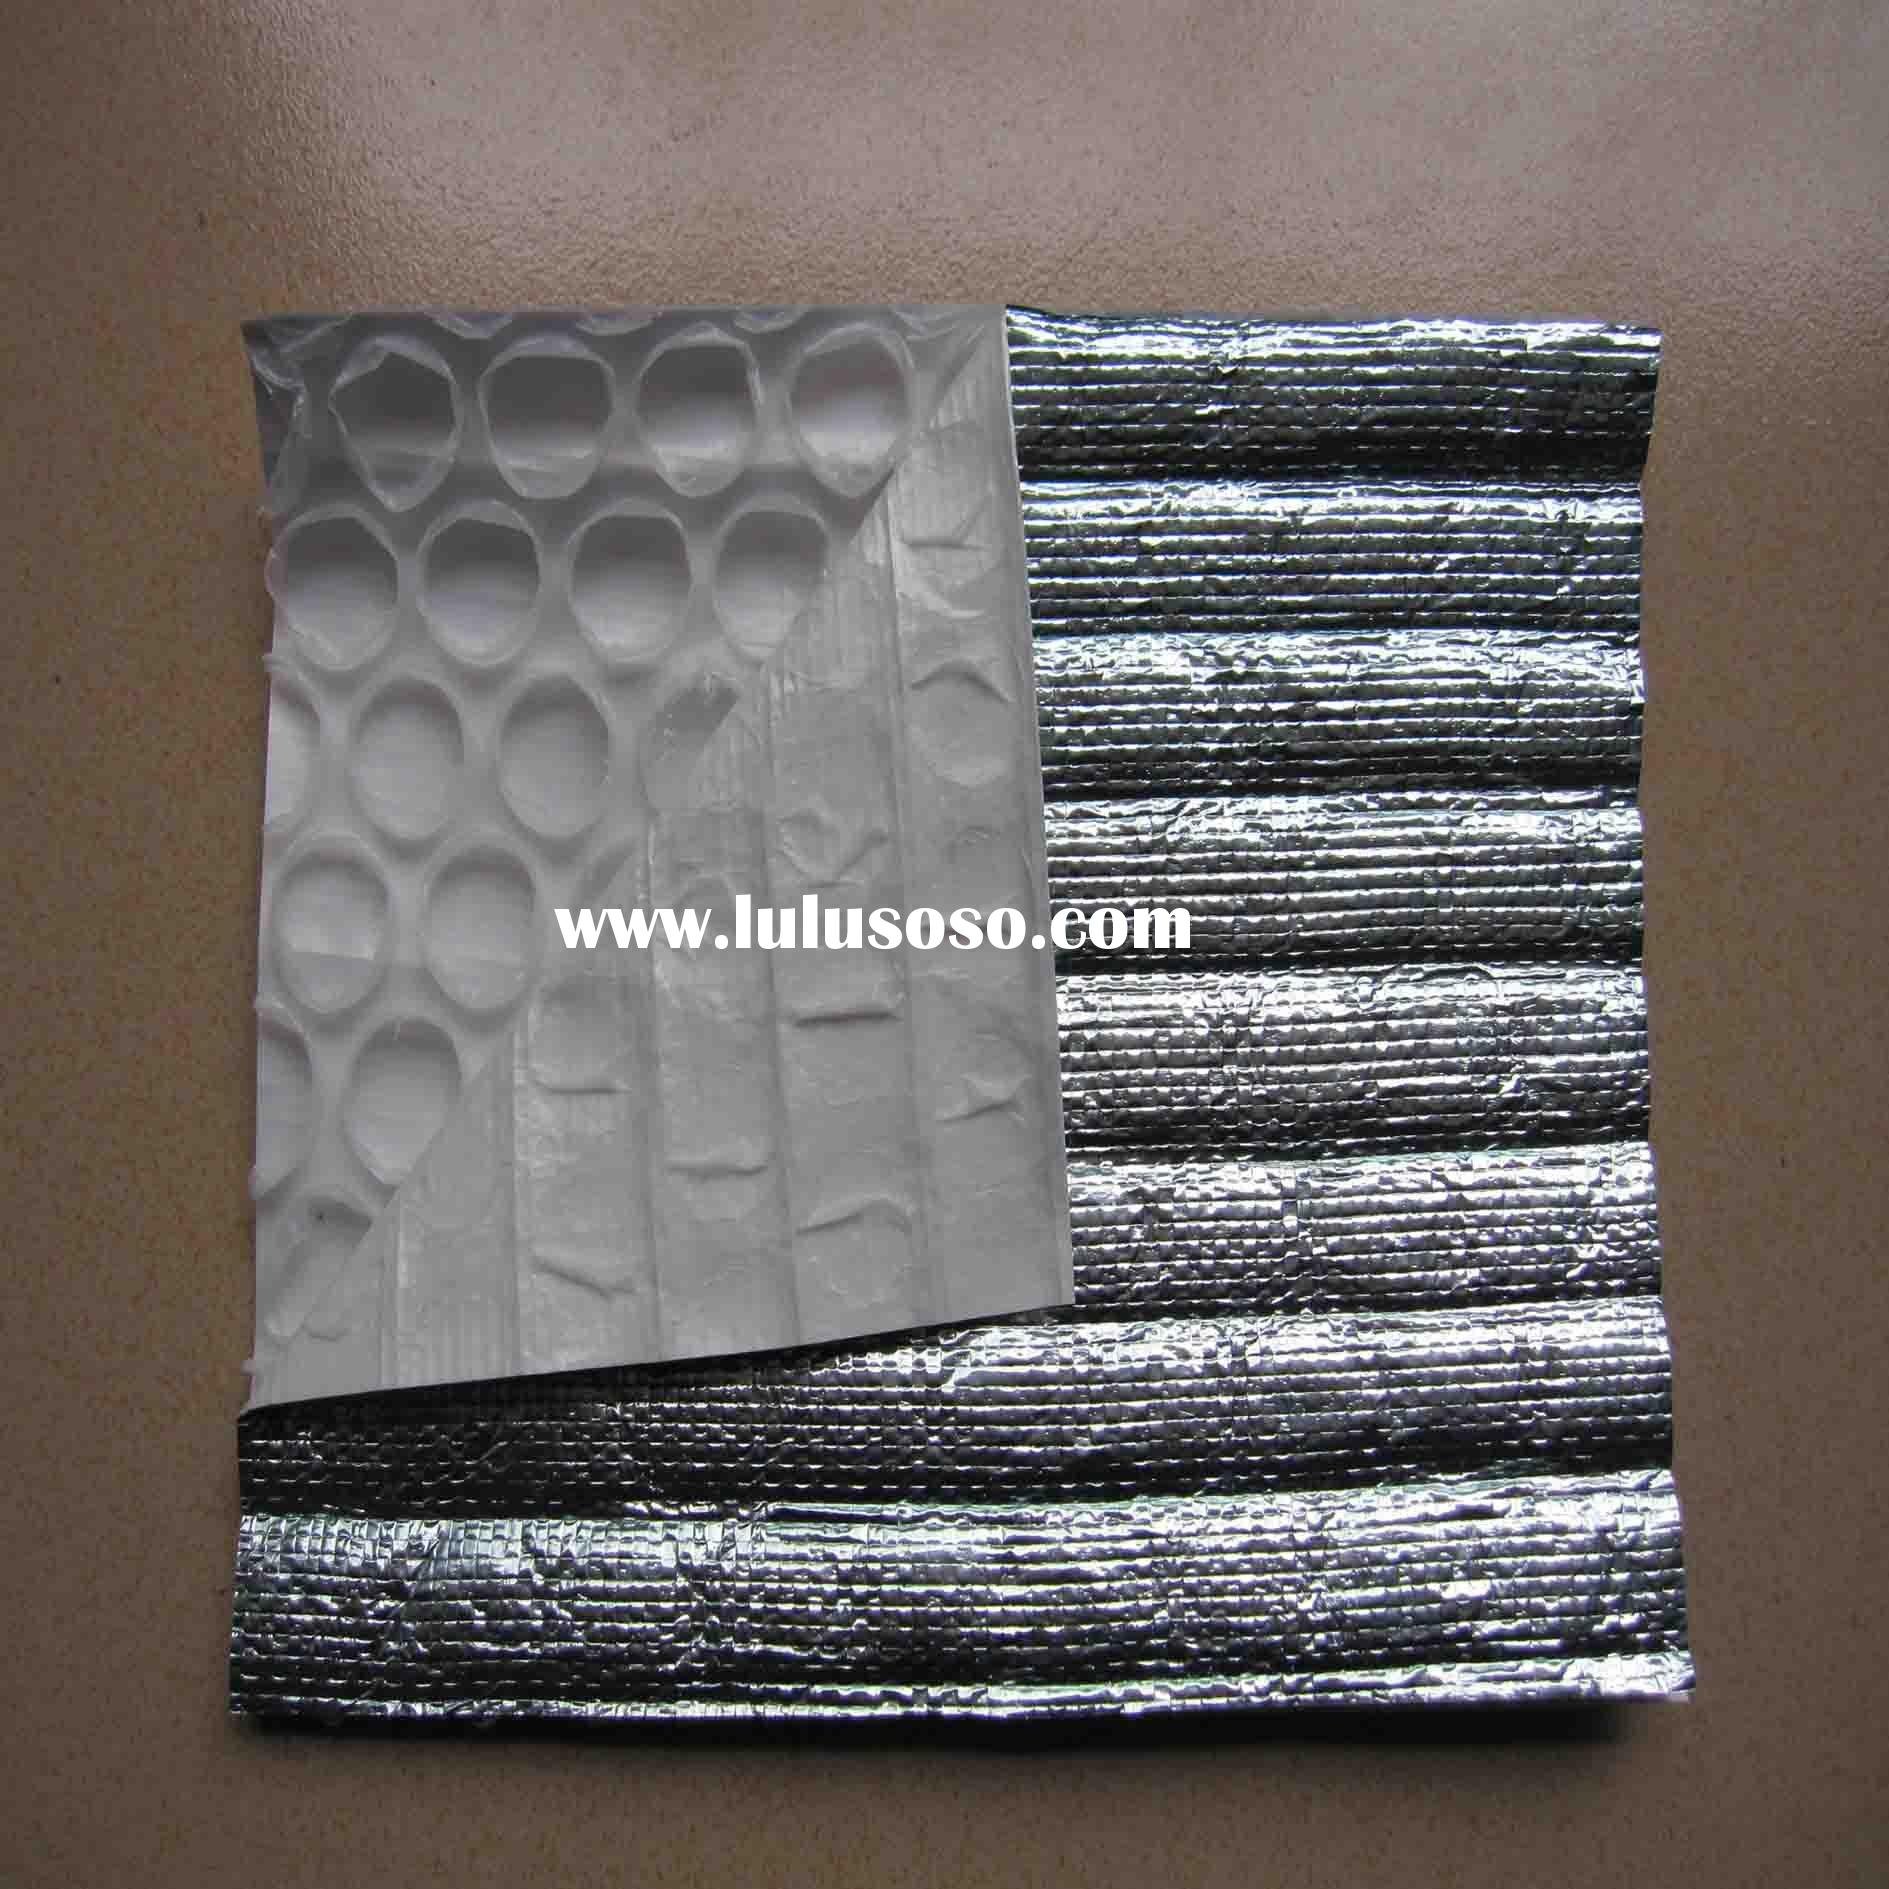 Foam Insulation with Double-side Aluminum Foil, Heat Insulation Materials